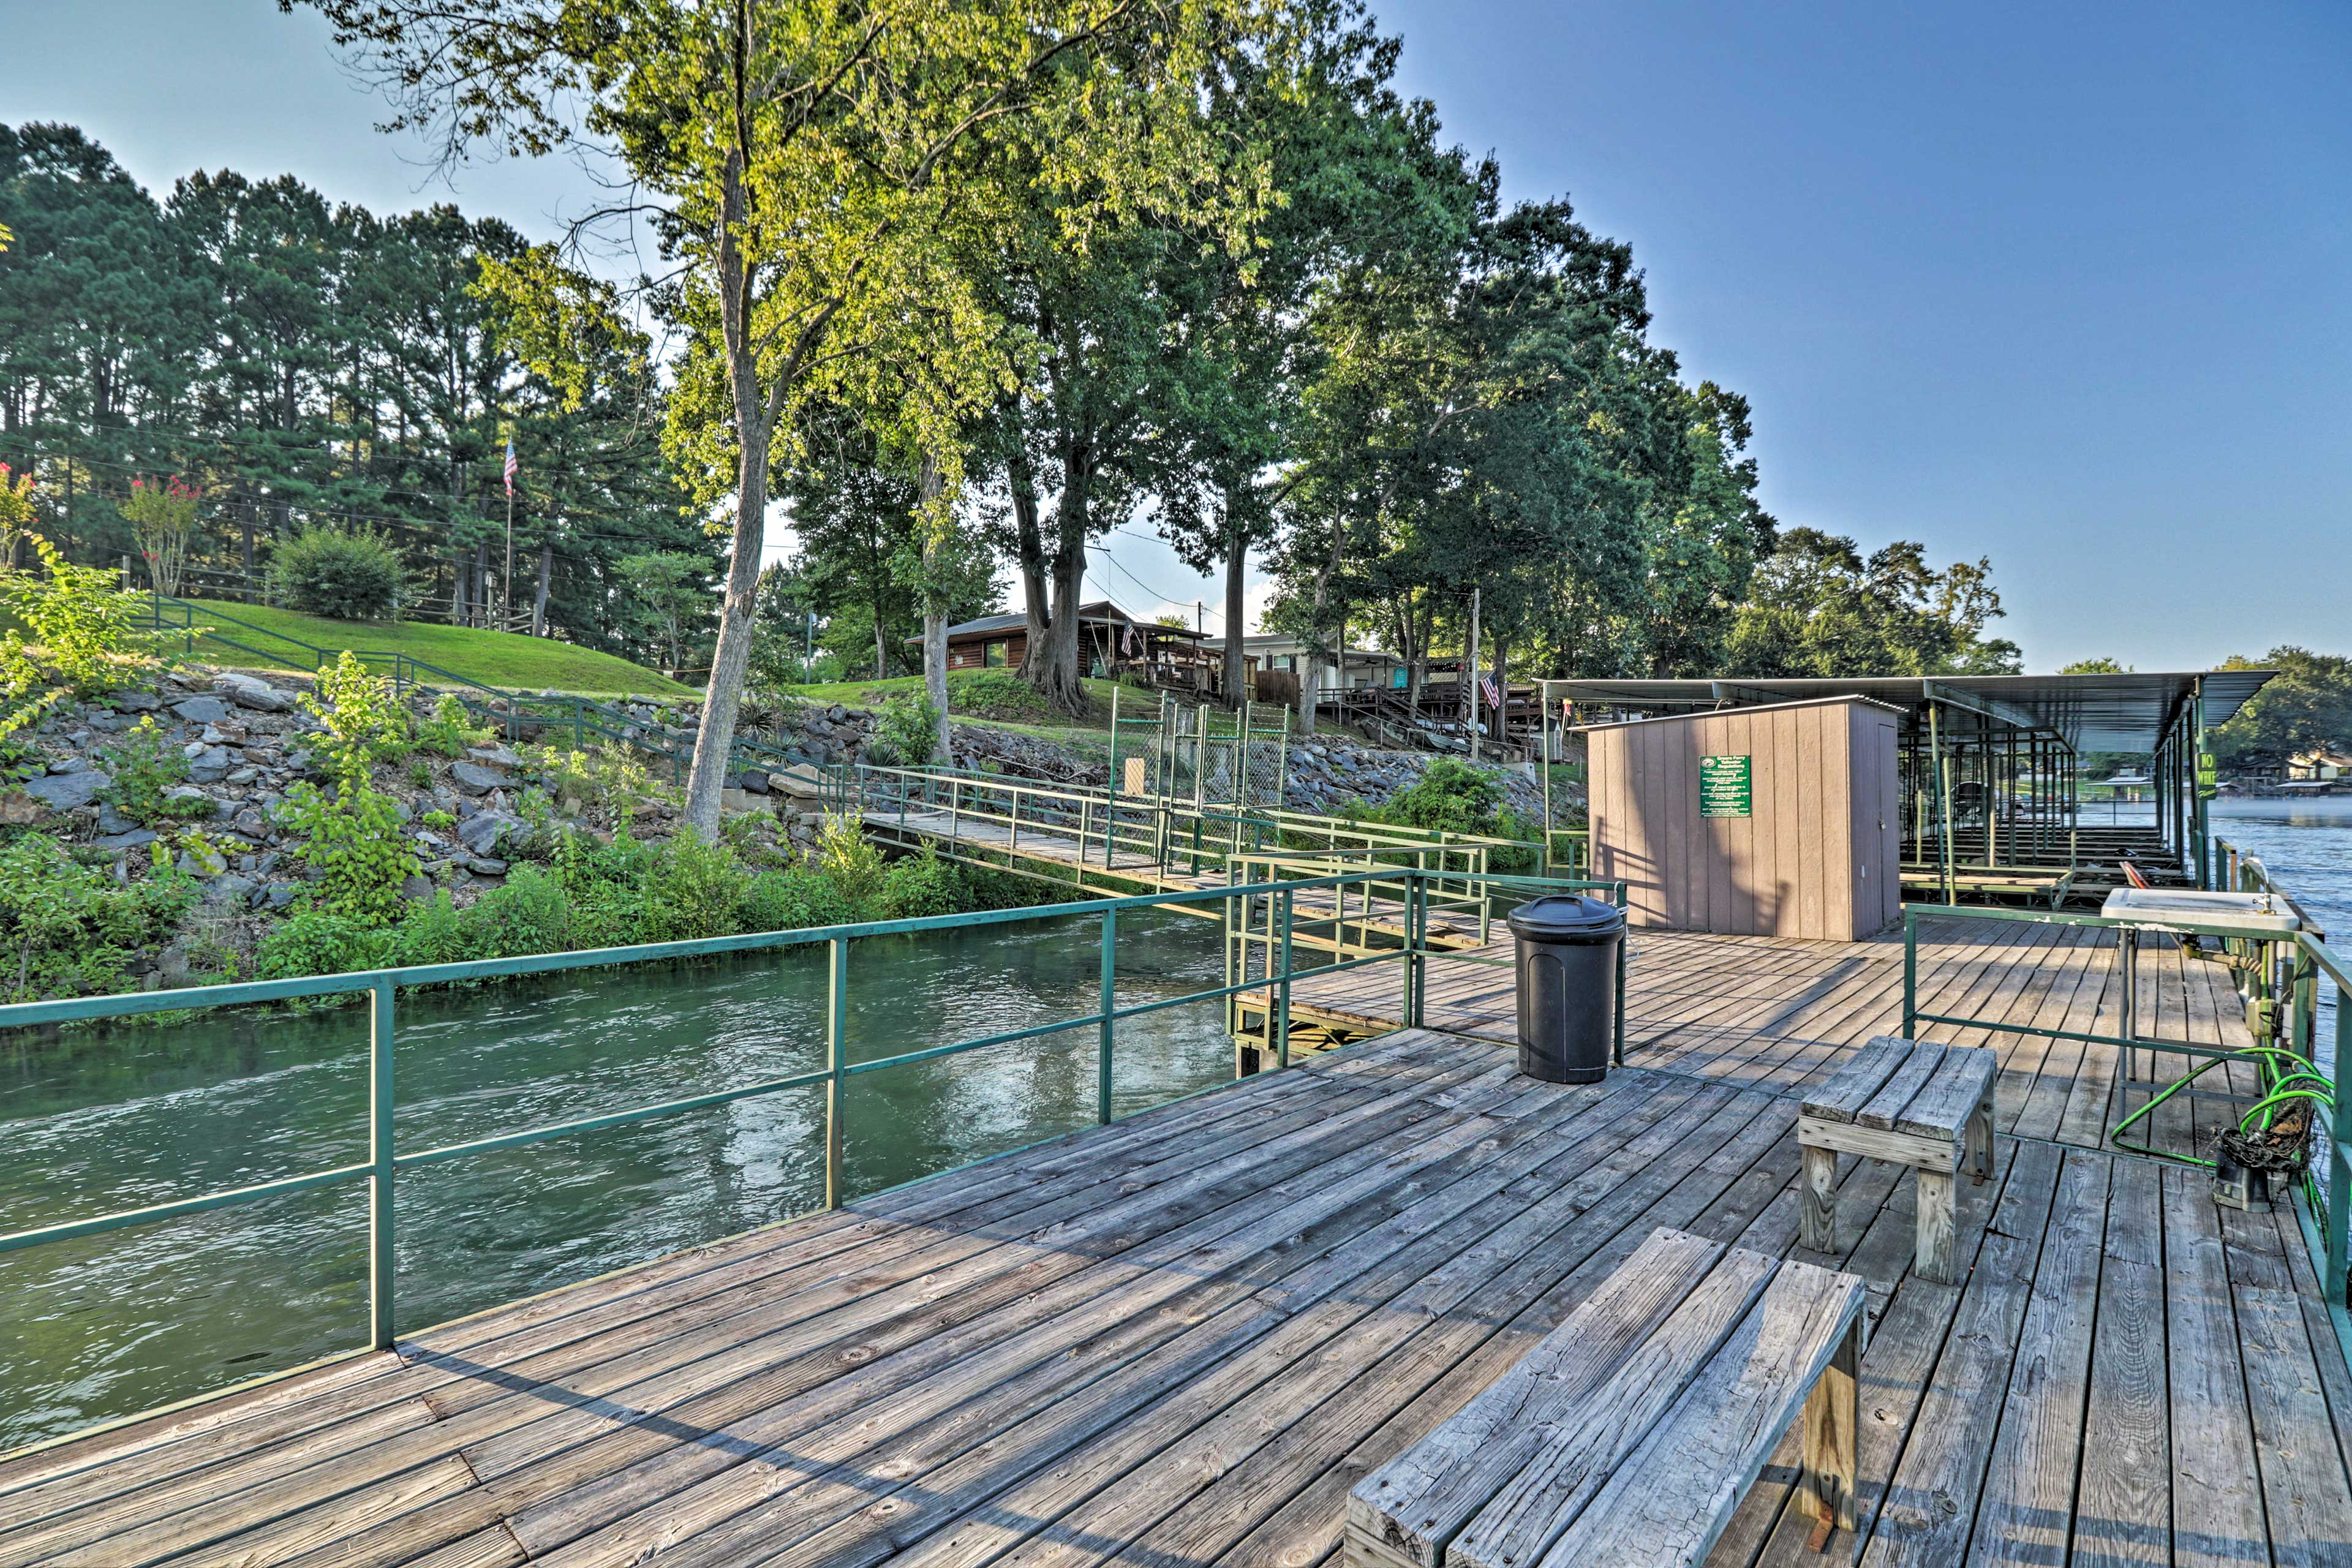 Lush scenery and riverfront vistas set the scene for your stay in Heber Springs!